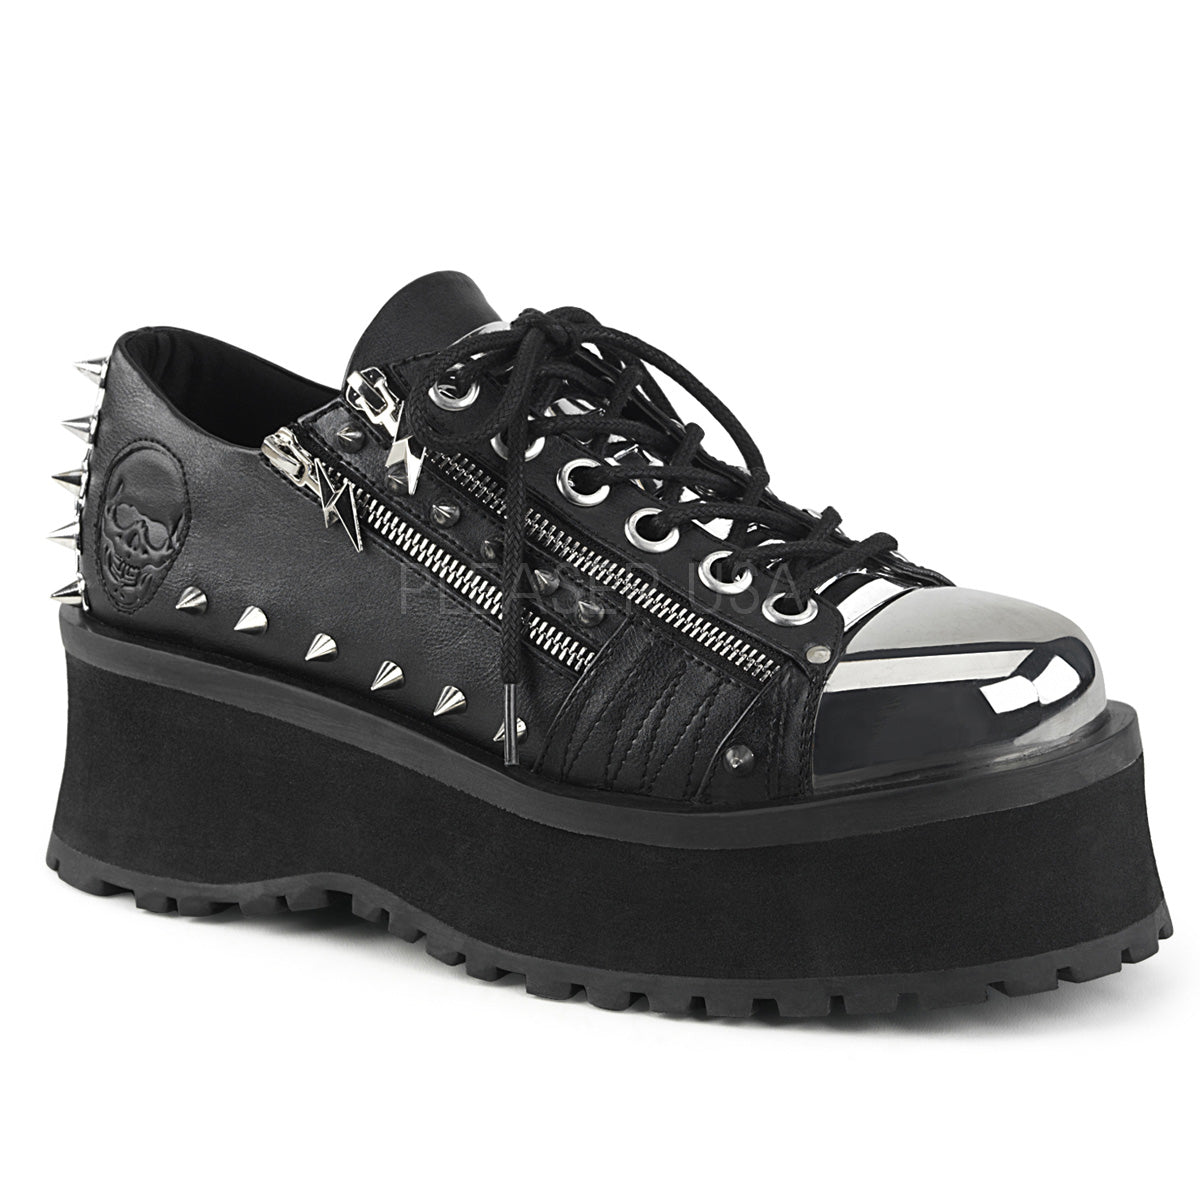 Unisex Demonia GRAVEDIGGER-04 Platform Lace-Up Oxford Black Goth Punk Spikes